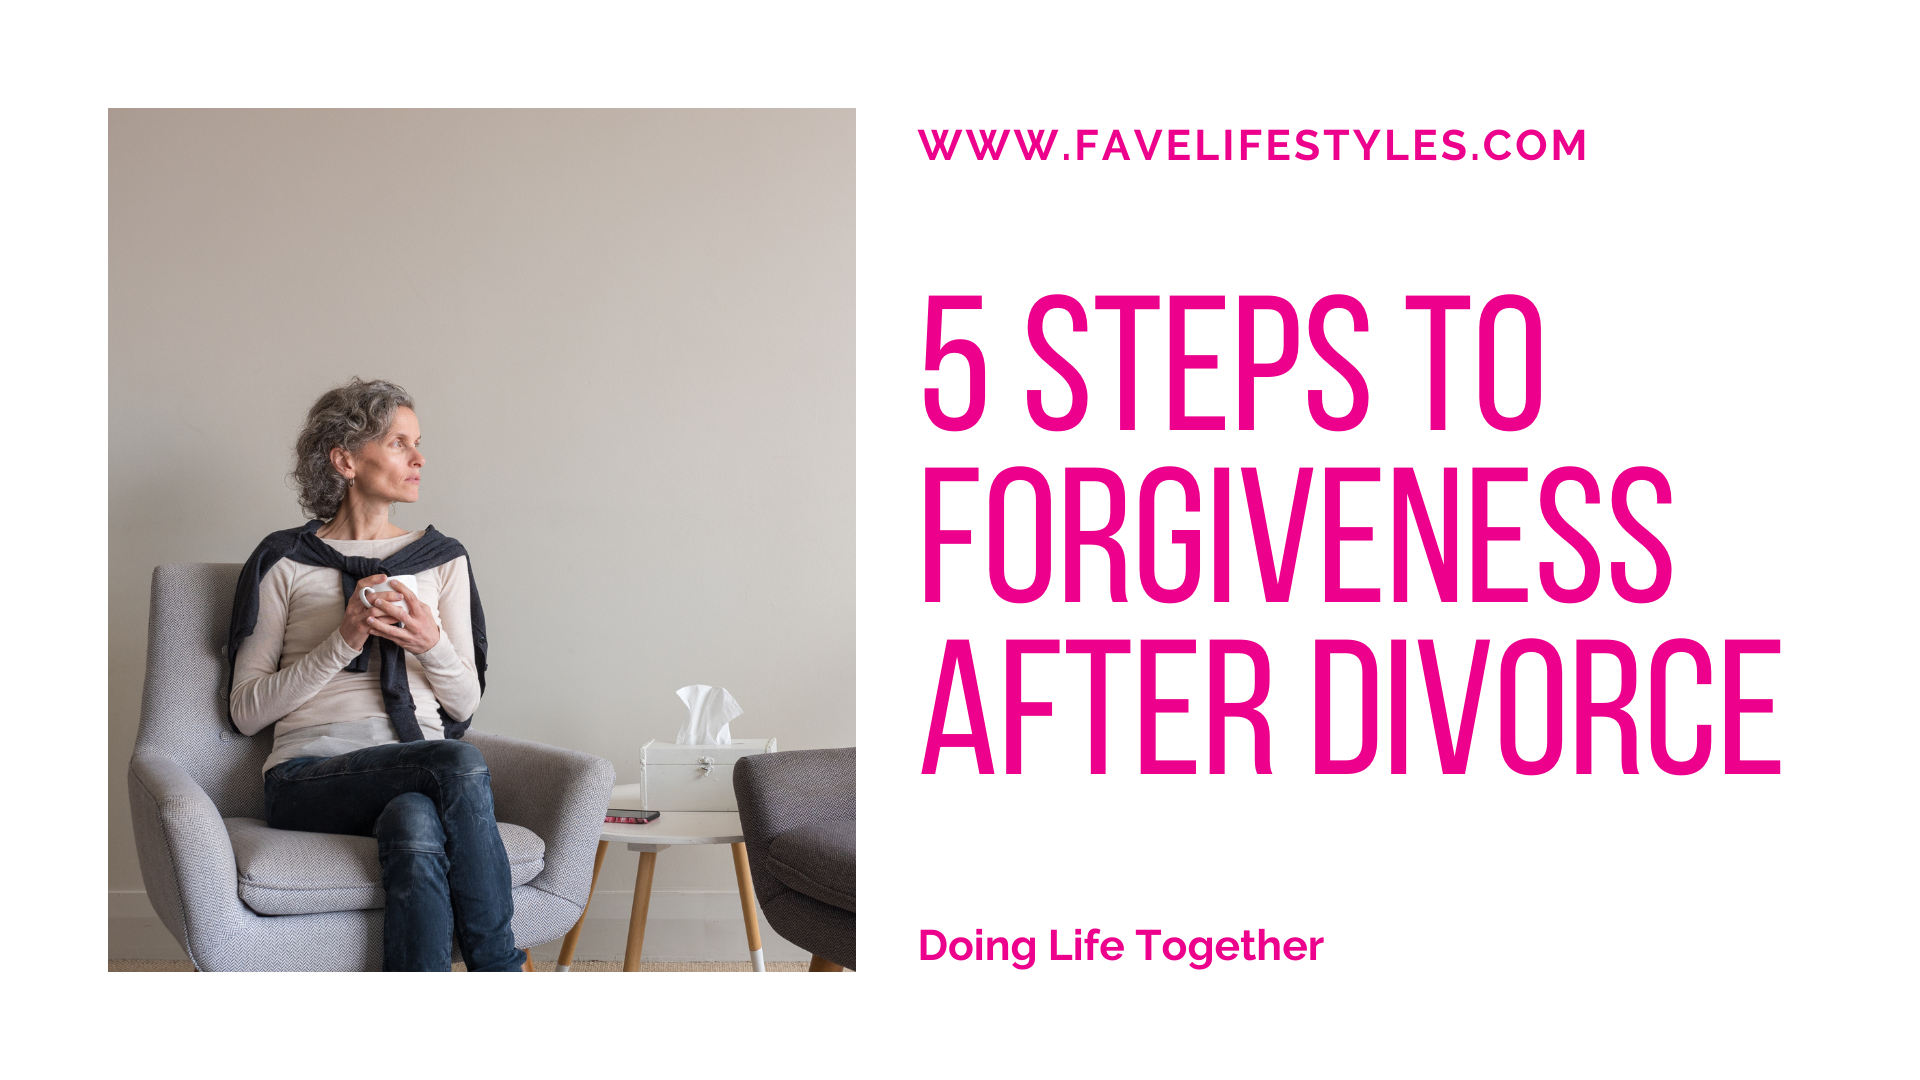 5 Steps to Forgiveness After Divorce